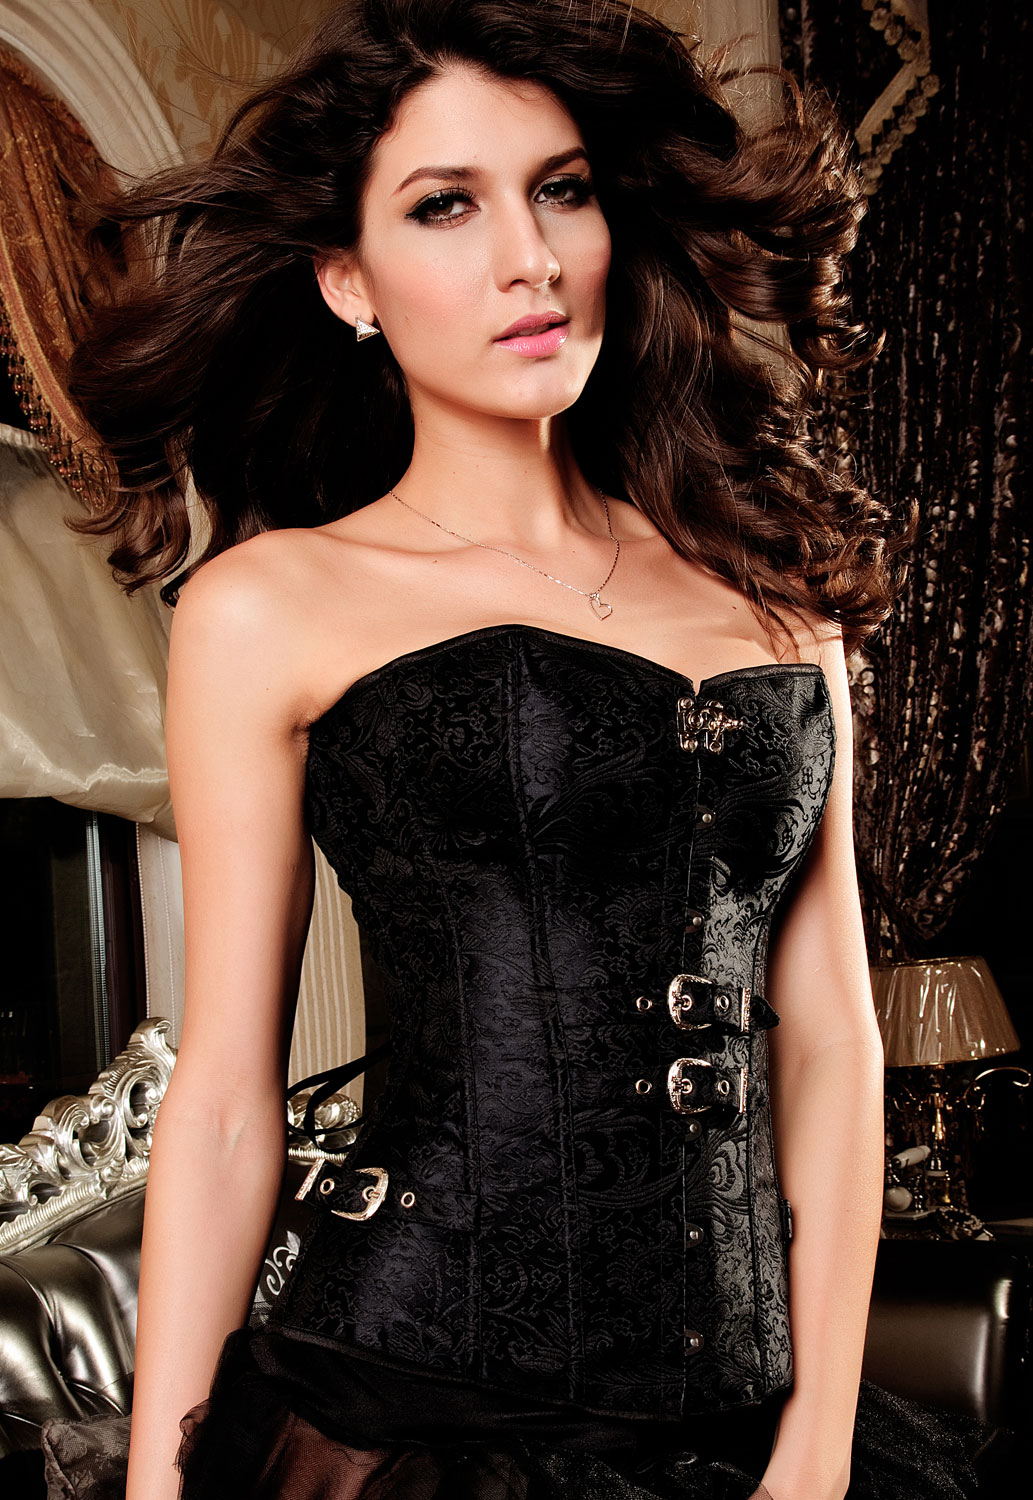 Korzeti Luxurious-Pteris-Jacquard-Corset-Black-1-S-LC5284-2